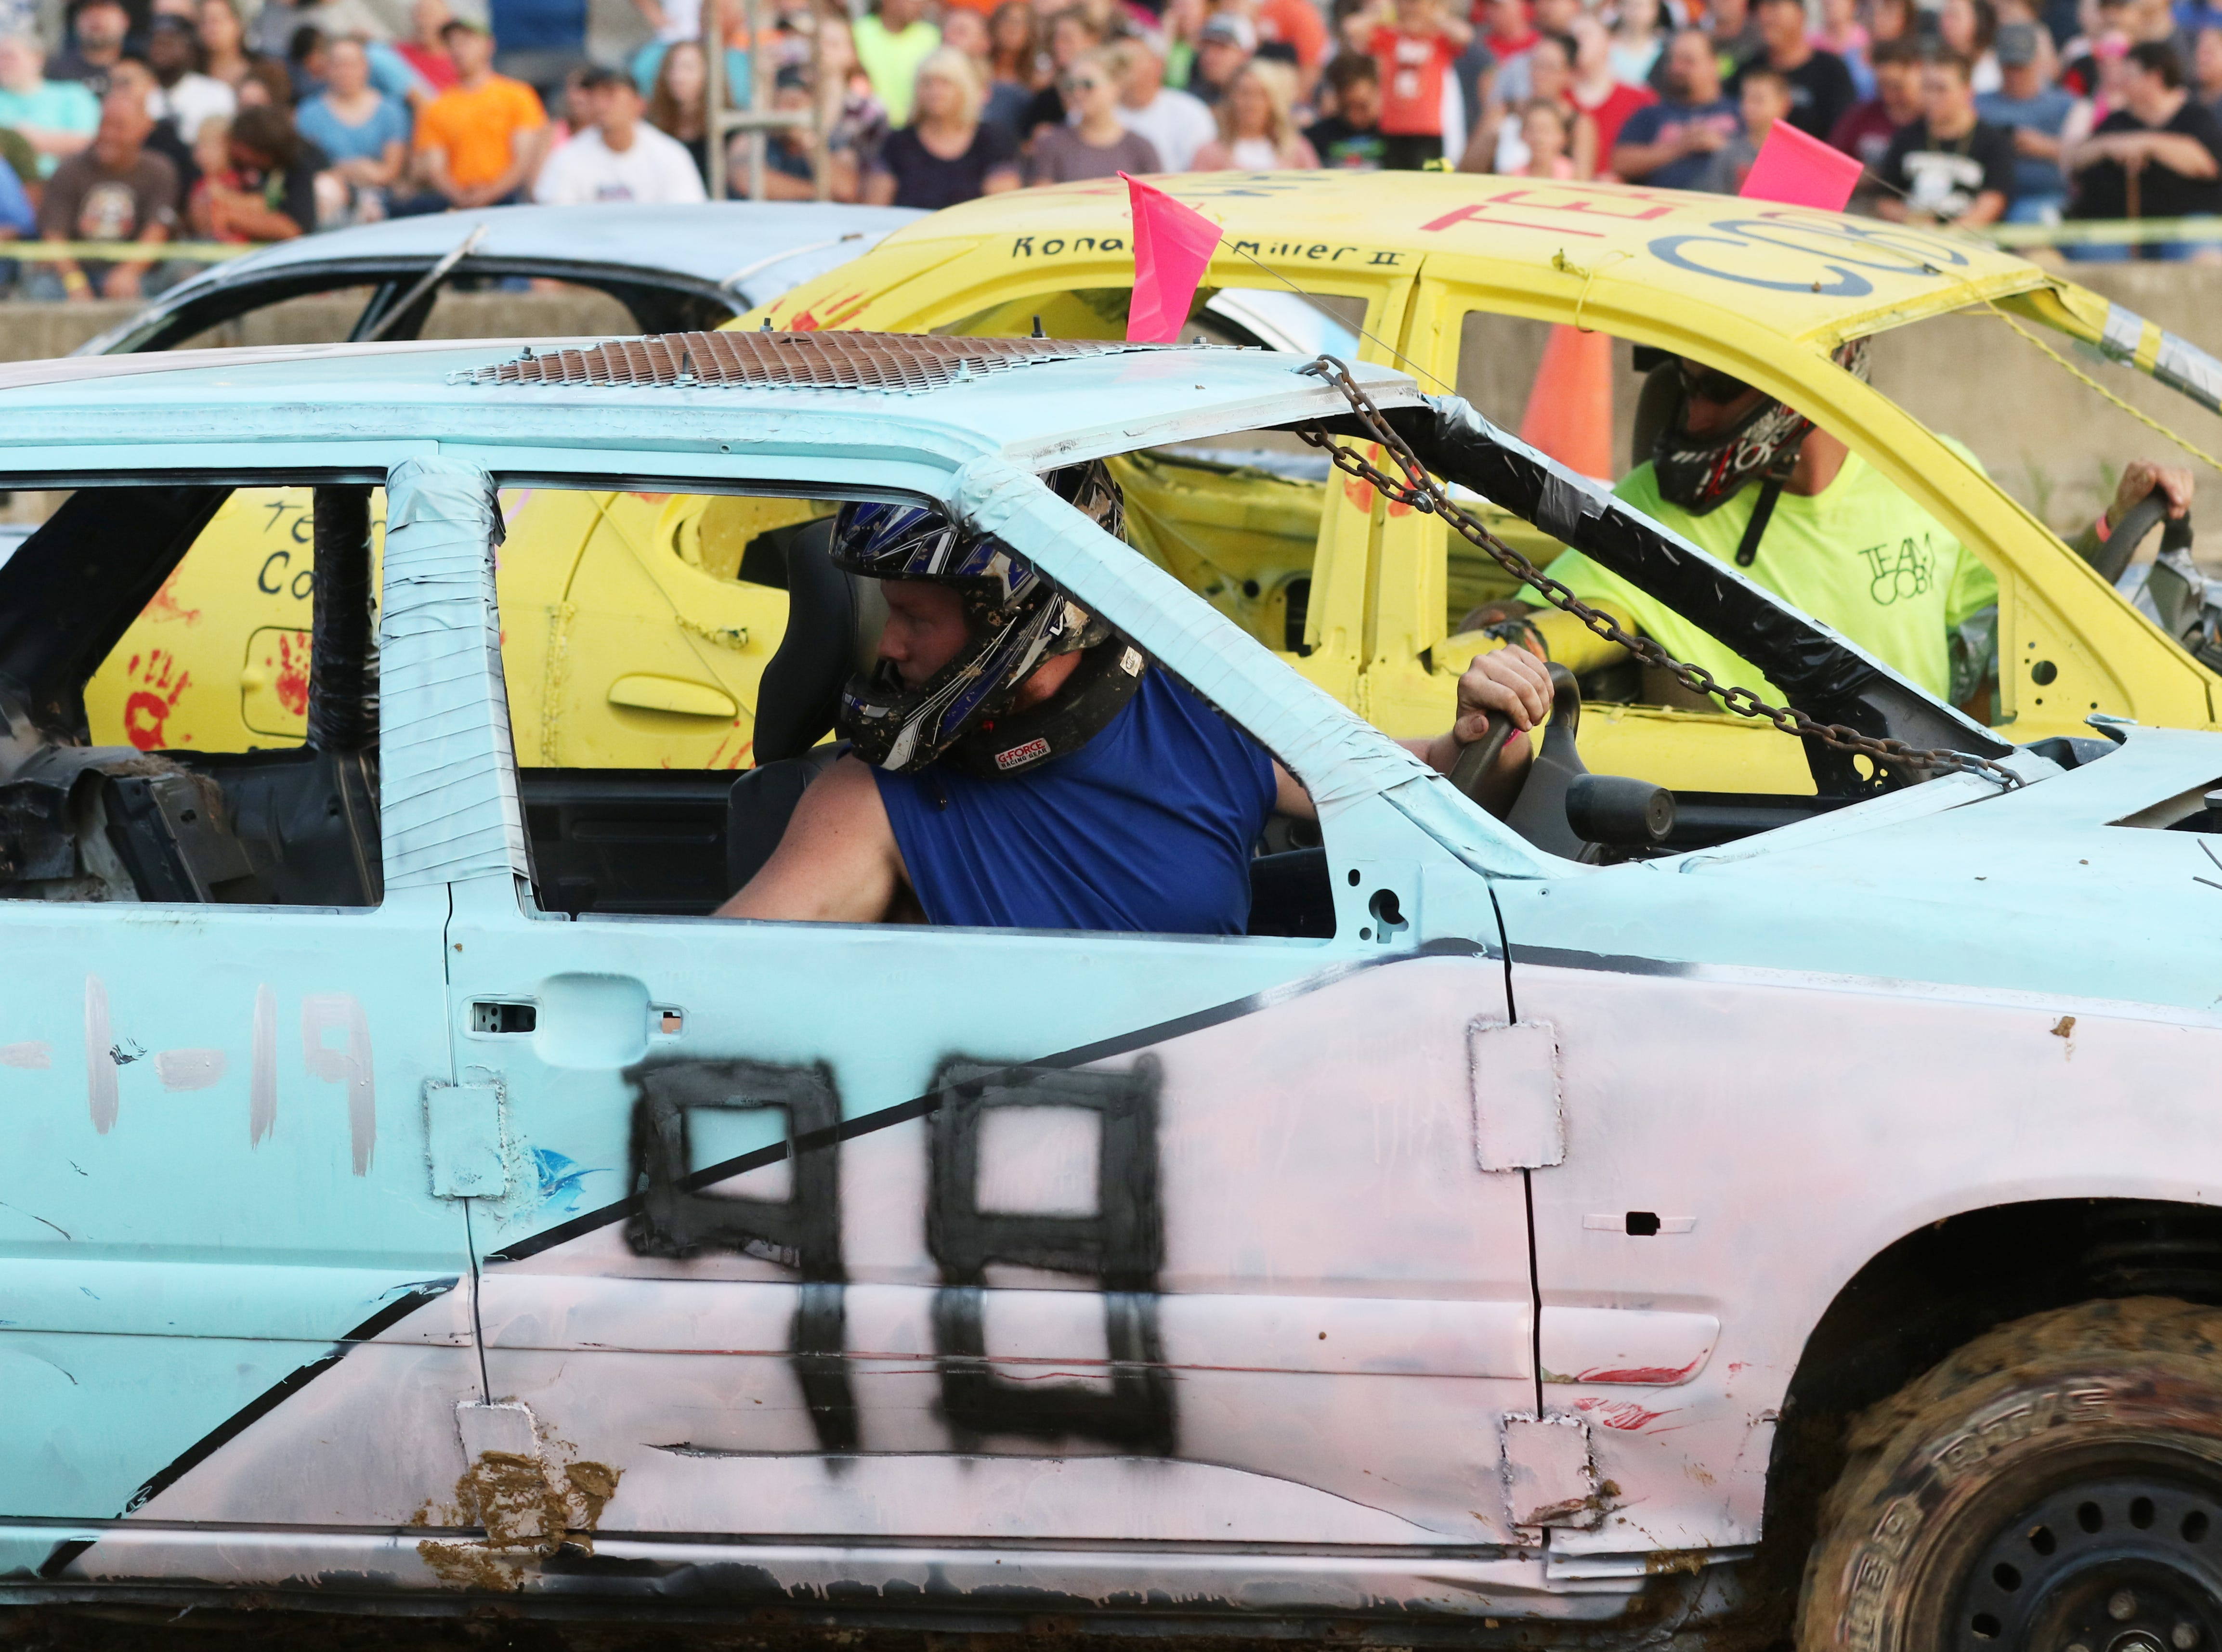 Patrick Bush in his 97 Volvo takes aim during the Sarge and Sons Demolition Derby at the Muskingum County Fair on Tuesday.